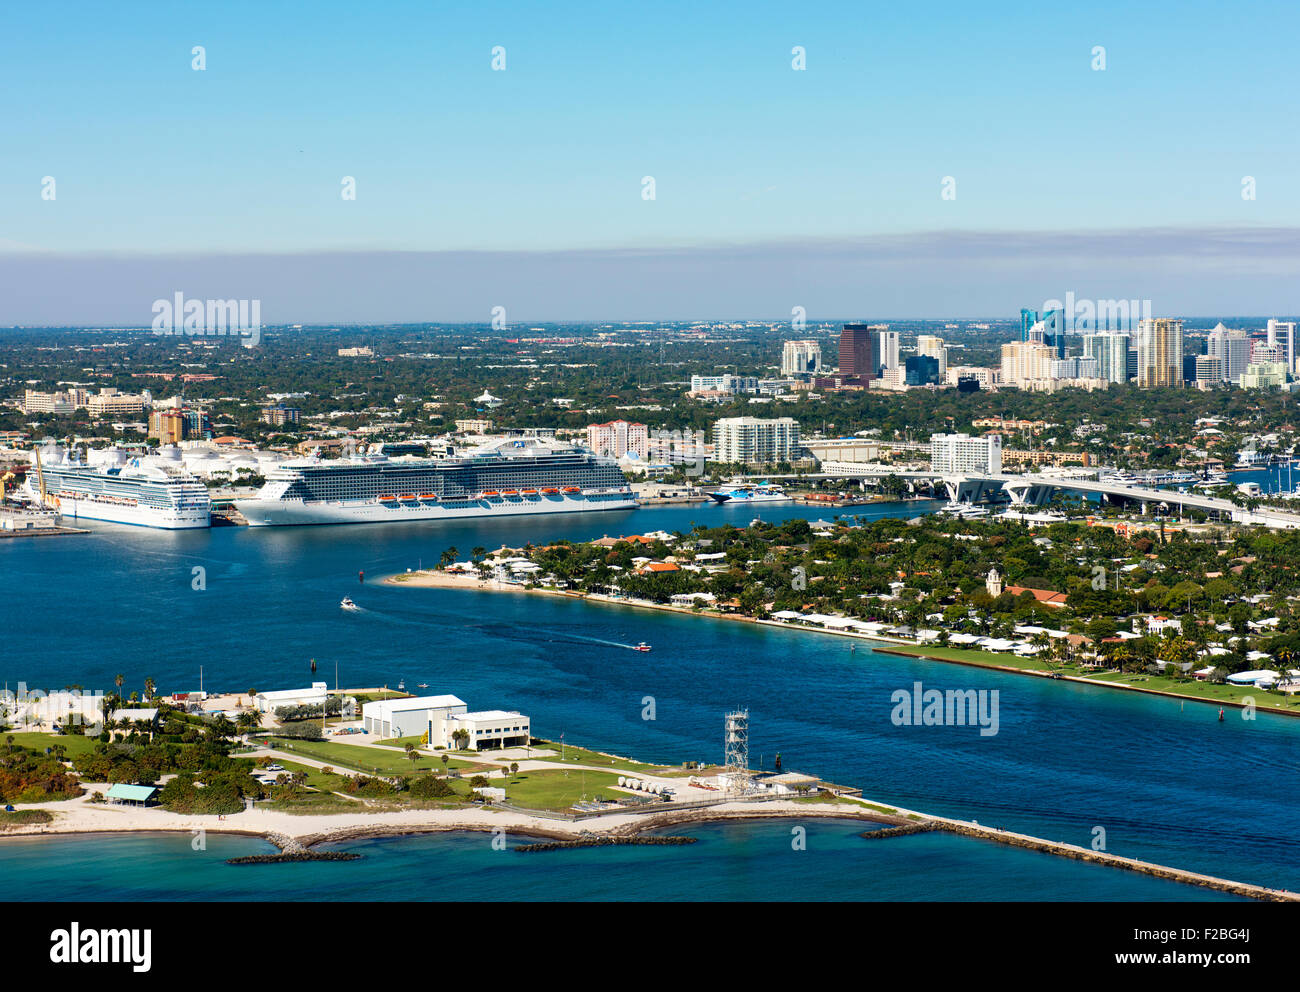 Cruise ships in Fort Lauderdale's harbor. Stock Photo